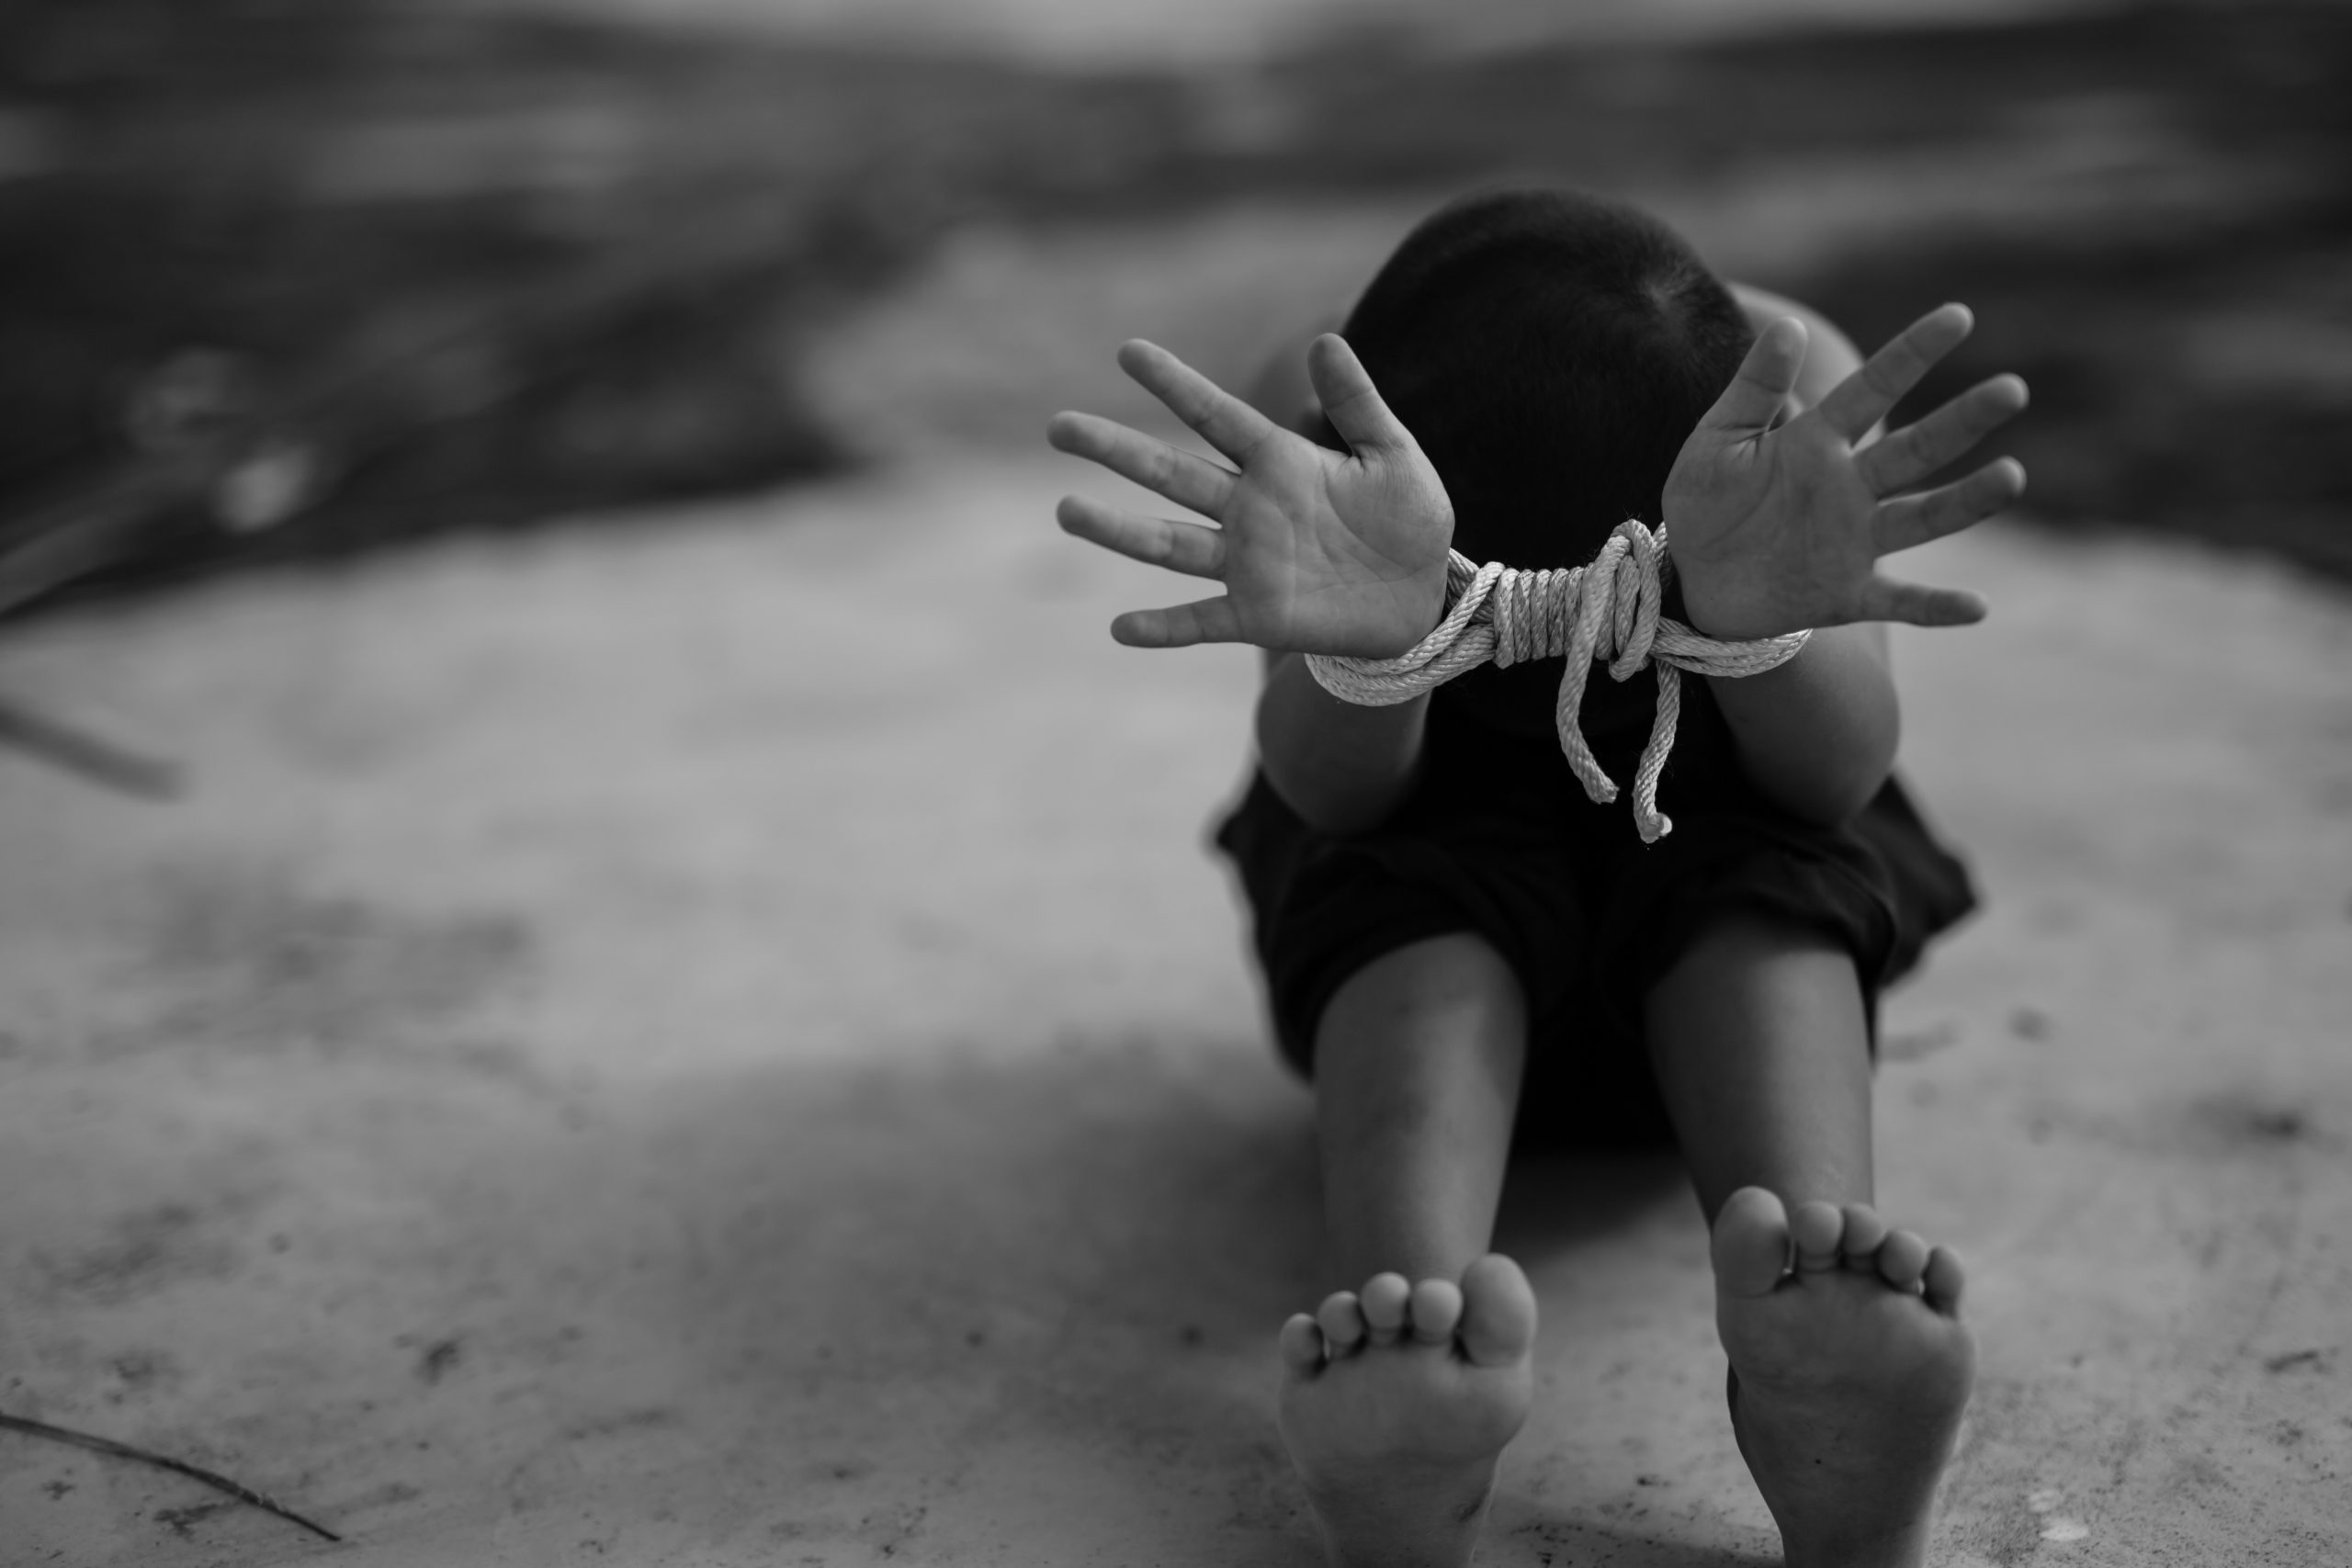 Child Trafficking in the European Union - Humanium